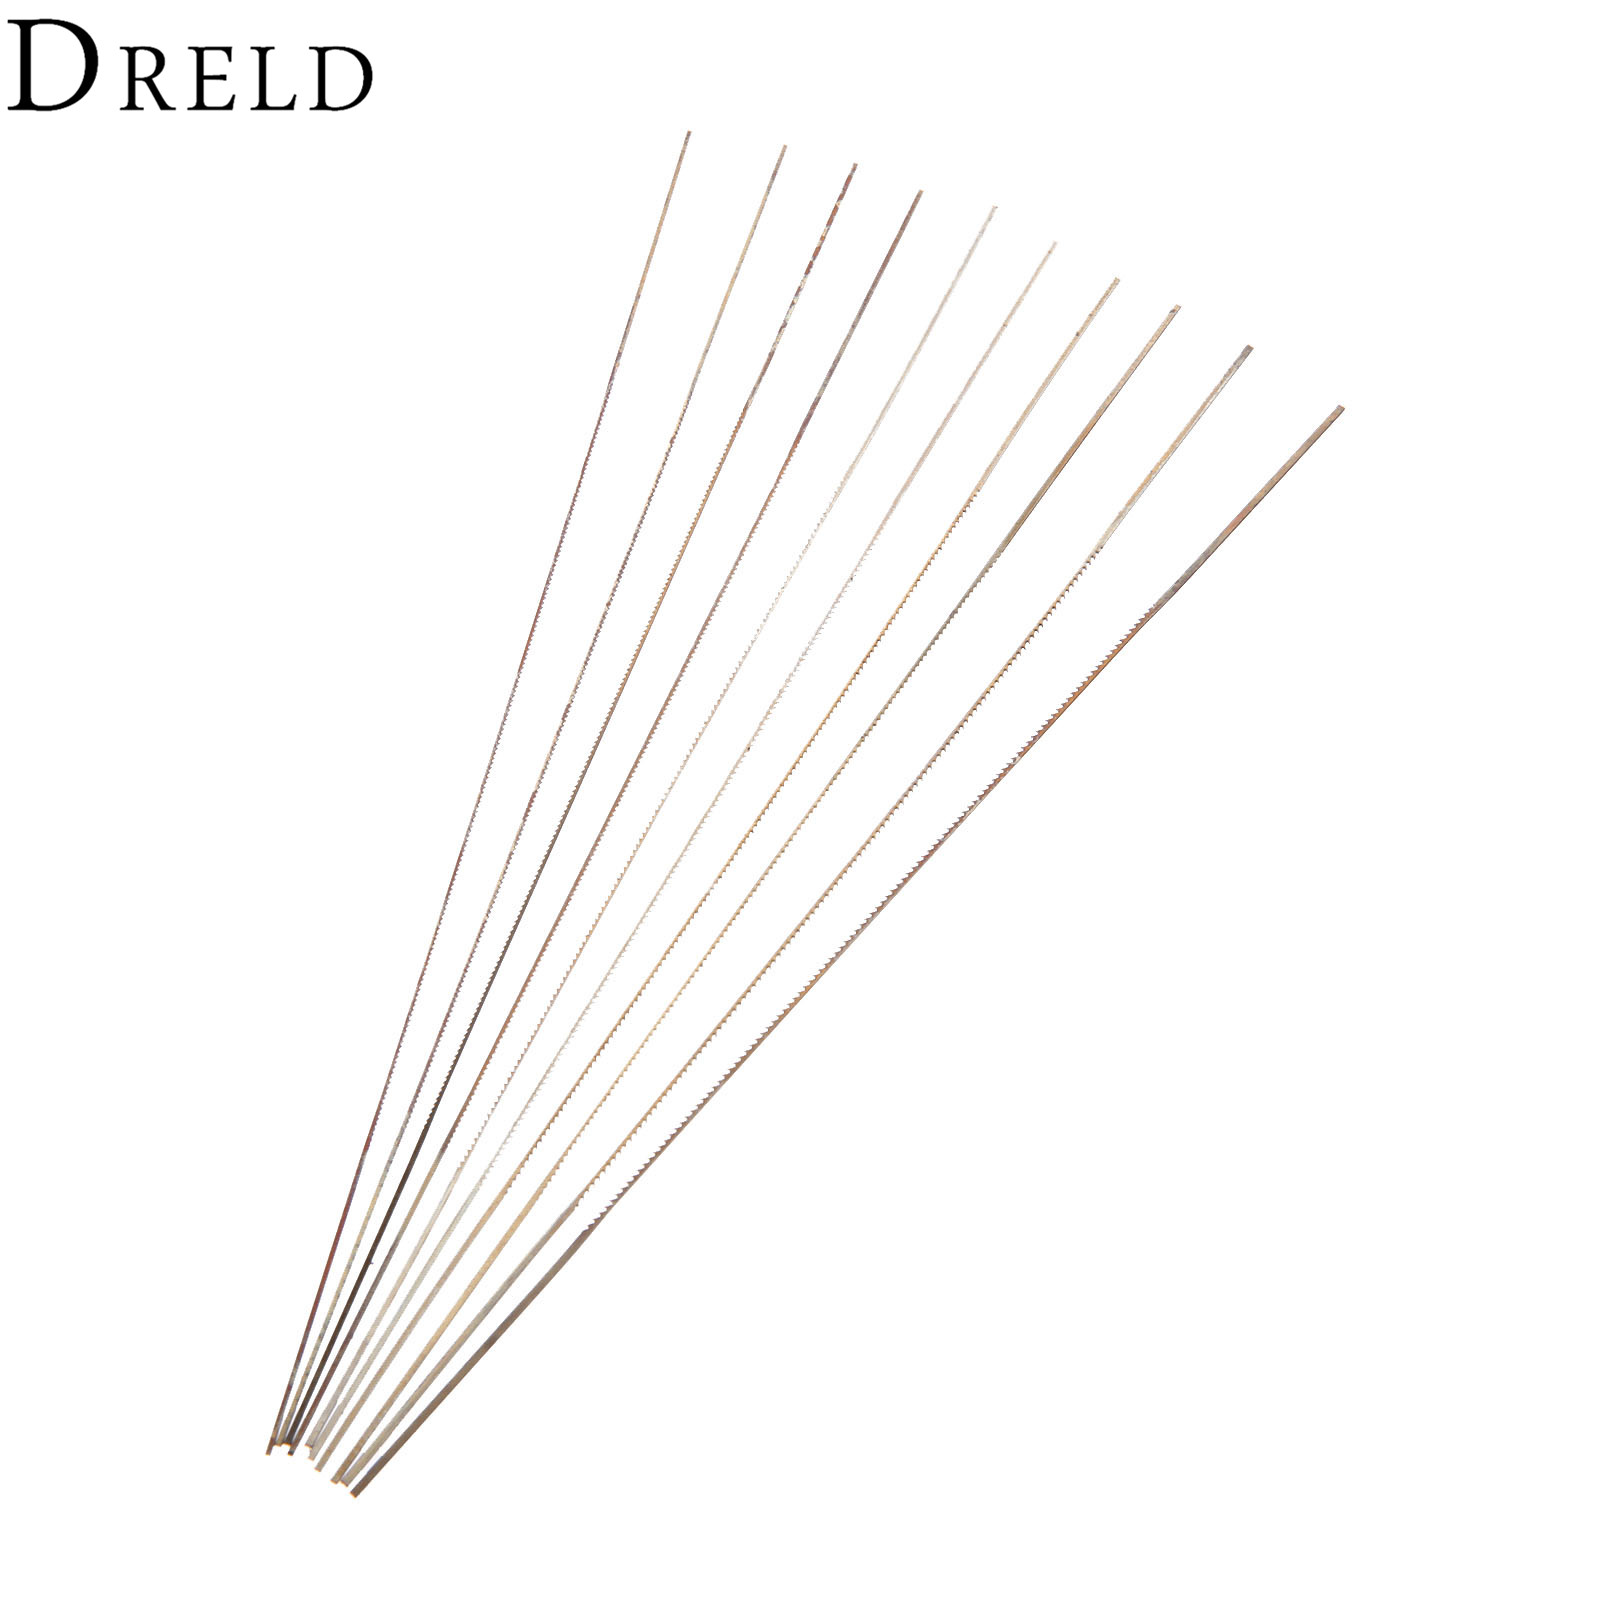 Dreld 10pc 130mm Scroll Saw Blades For Wood Metal Cutting